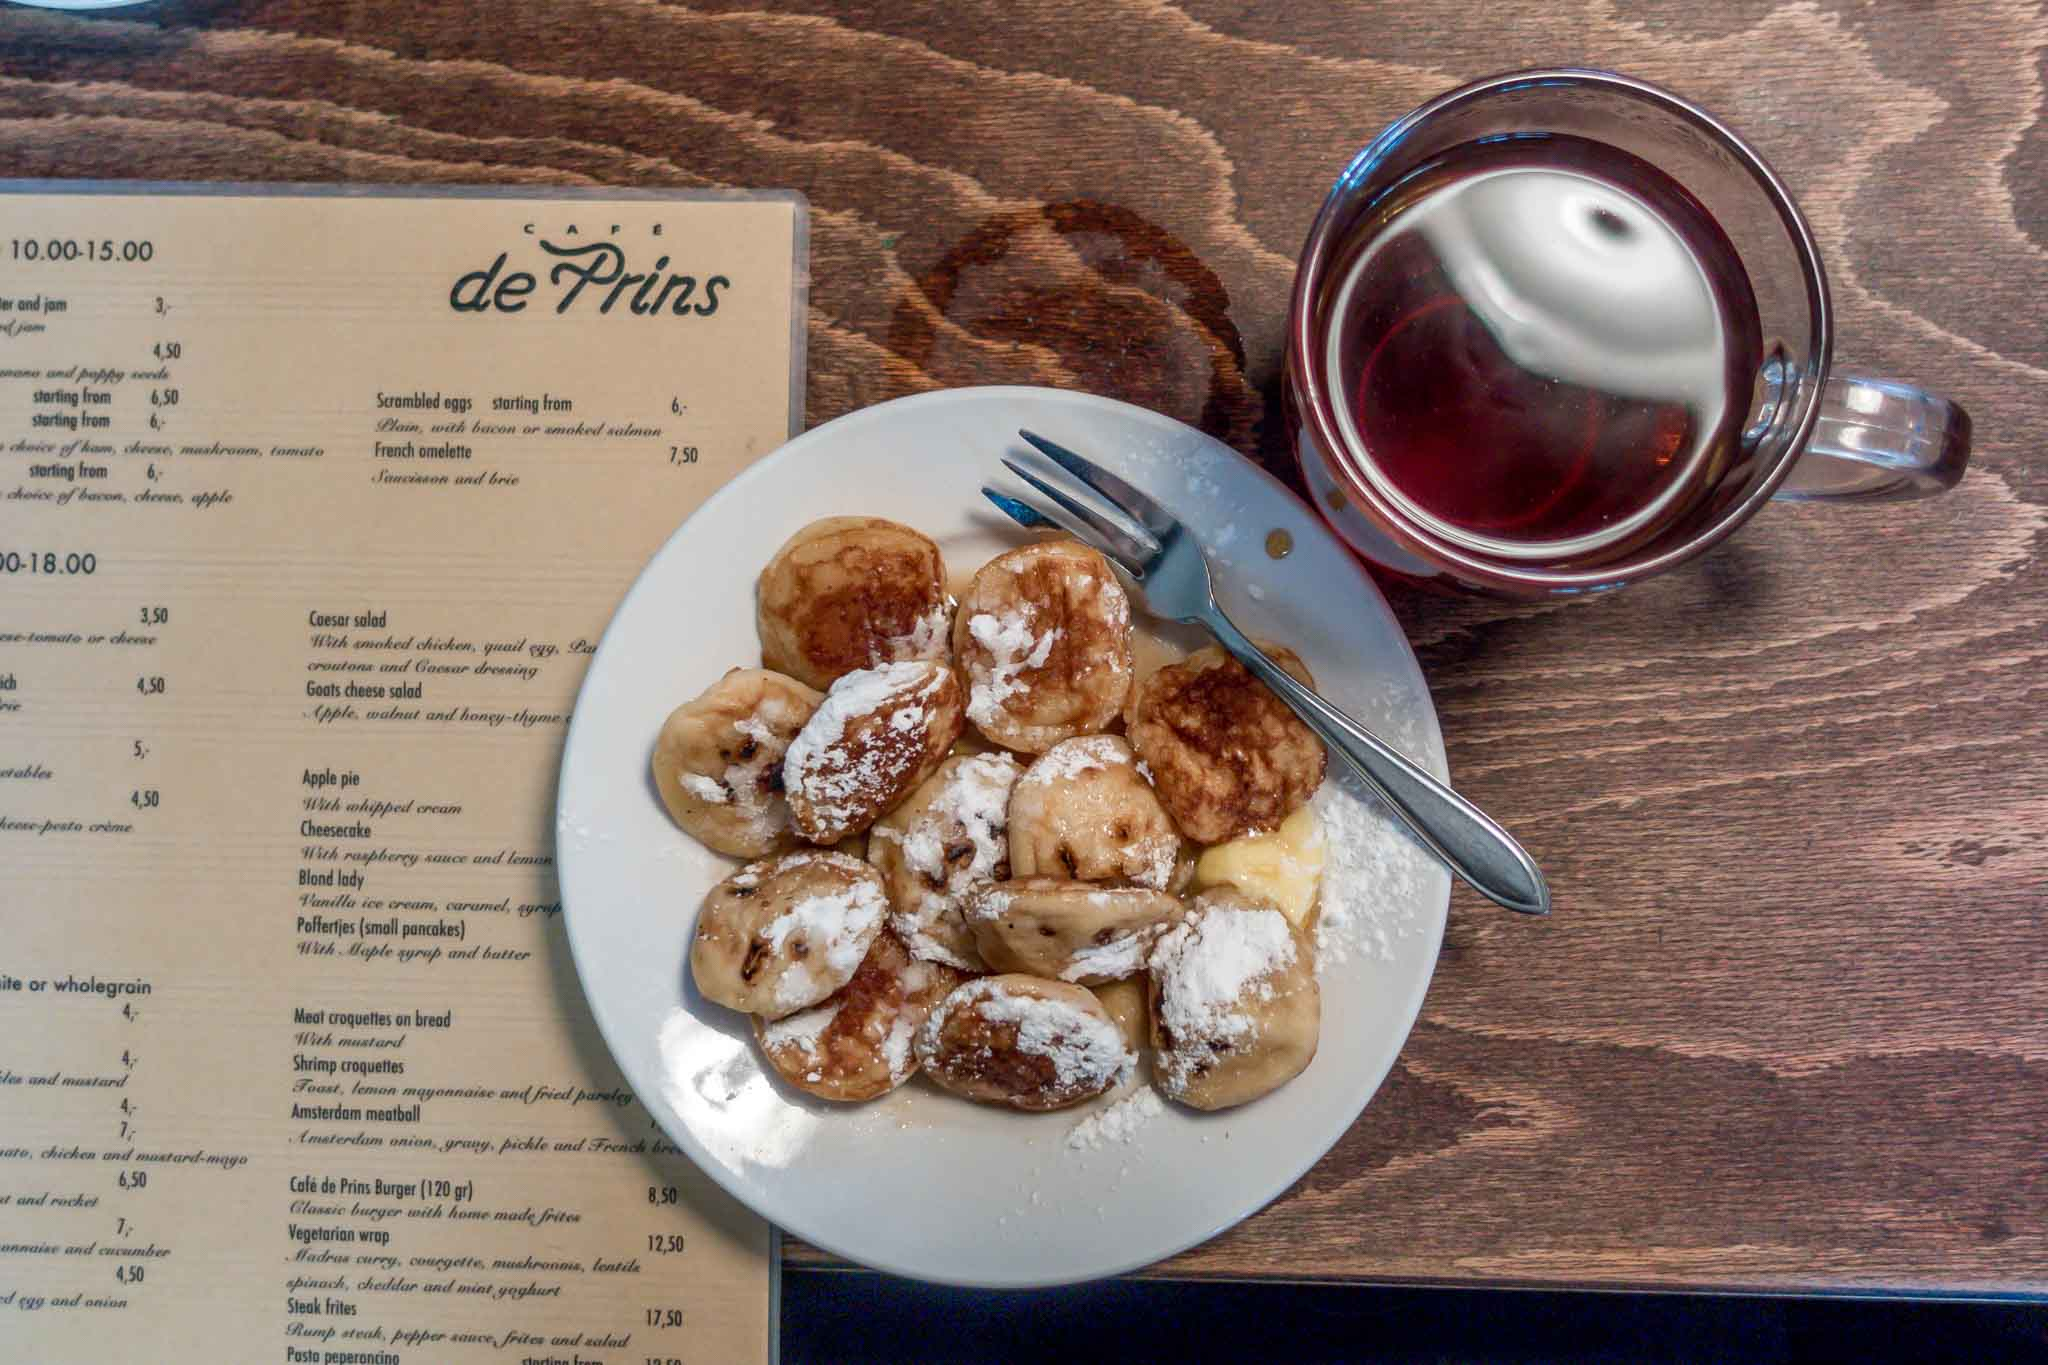 Small Dutch pancakes on a plate with a cup of tea and a menu